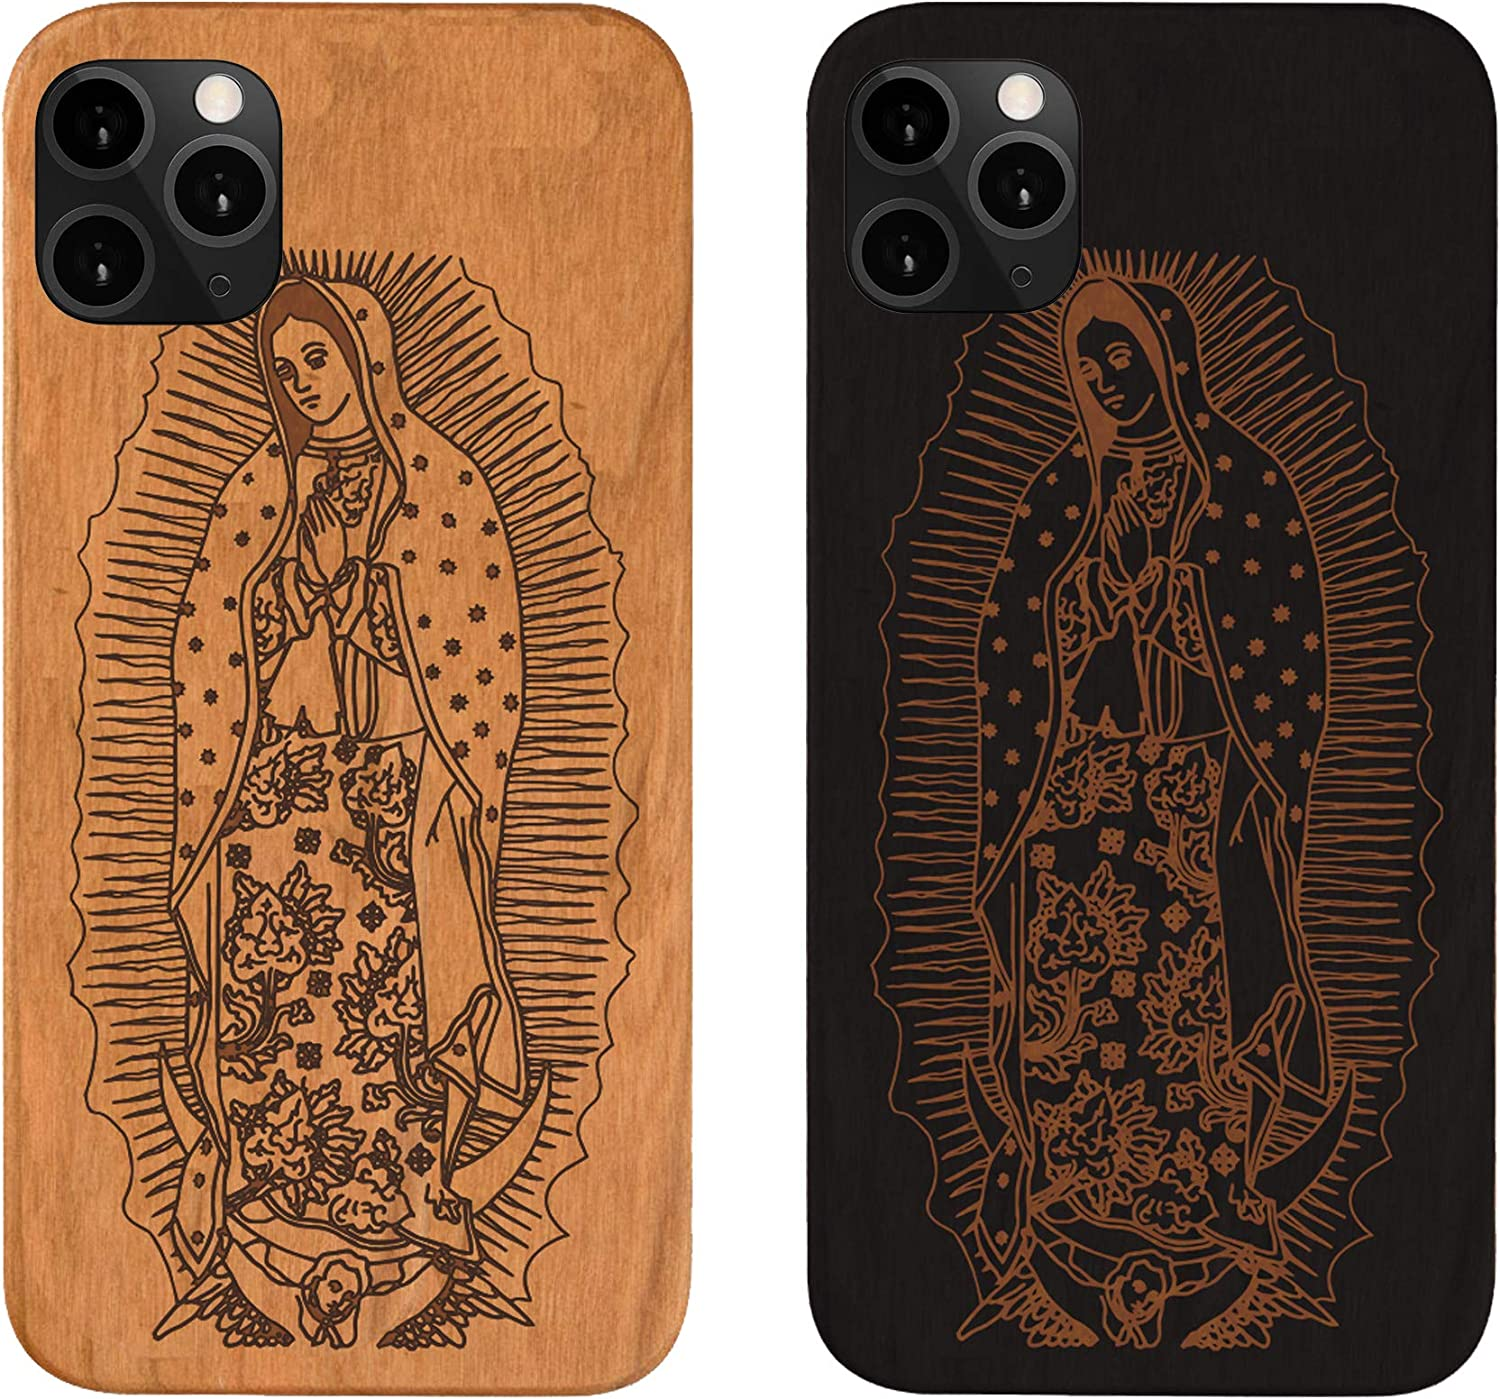 iPhone 11 Wood Phone Case, Virgin Mary Protective Case, iPhone 11 Pro Max, iPhone Xs Max, iPhone Xr,iPhone X, iPhone 6,7,8 Plus, iPhone SE2020 (Brown (Natural), iPhone 6,7,8,SE 2020)